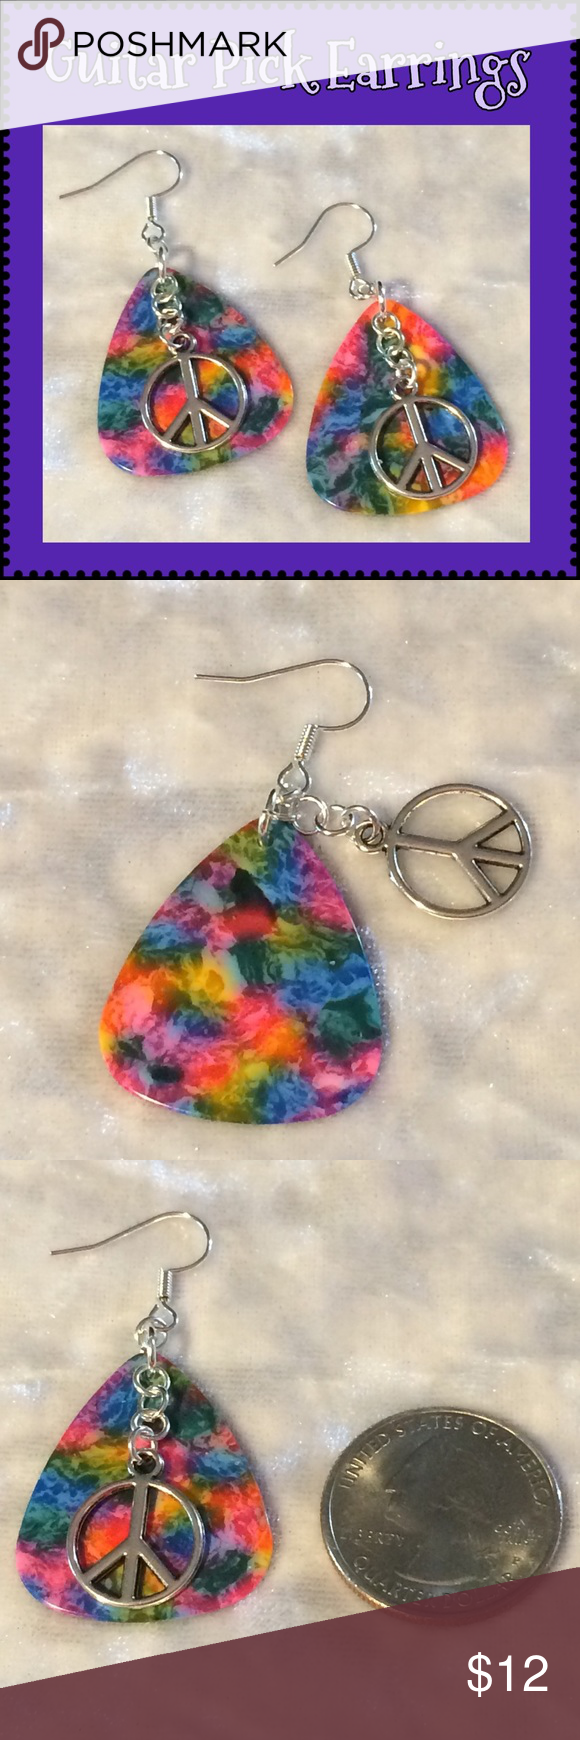 Download Tie Dye Guitar Pick Hippie Peace Sign Earrings These ...